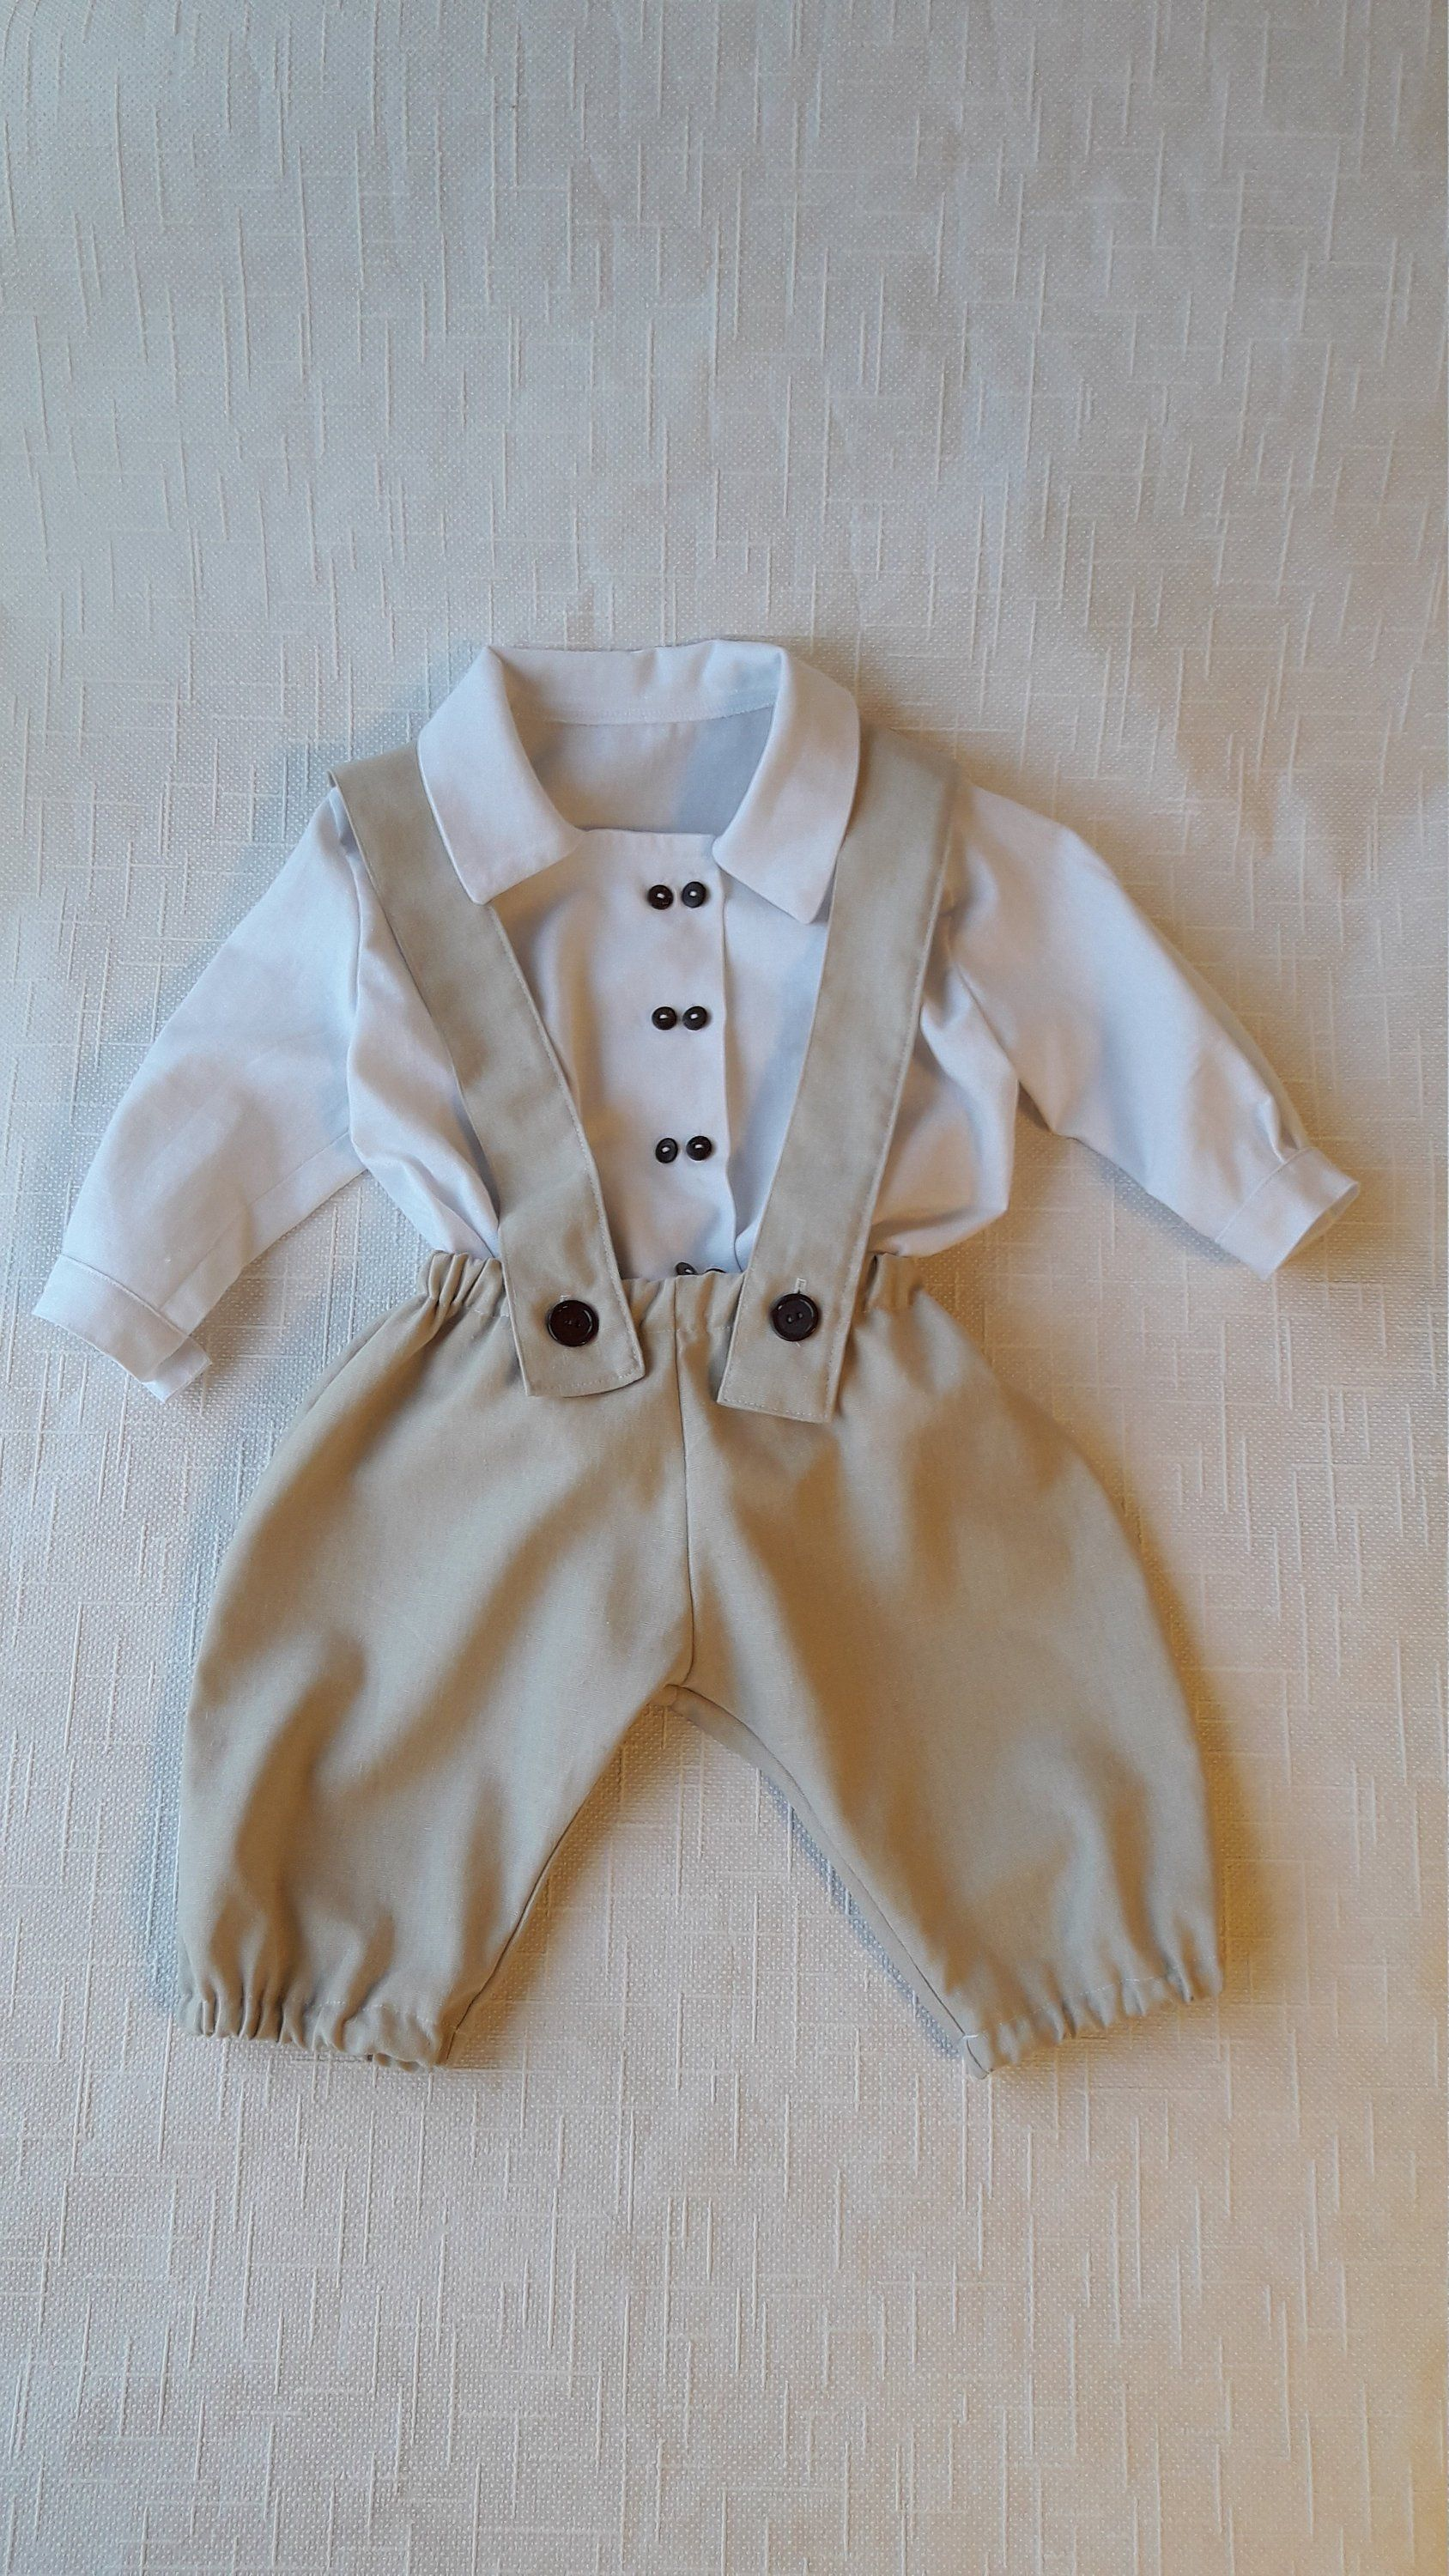 7d376cdfa Boy linen clothes, Baptism outfit, Boy wedding outfit, Baby pants ...